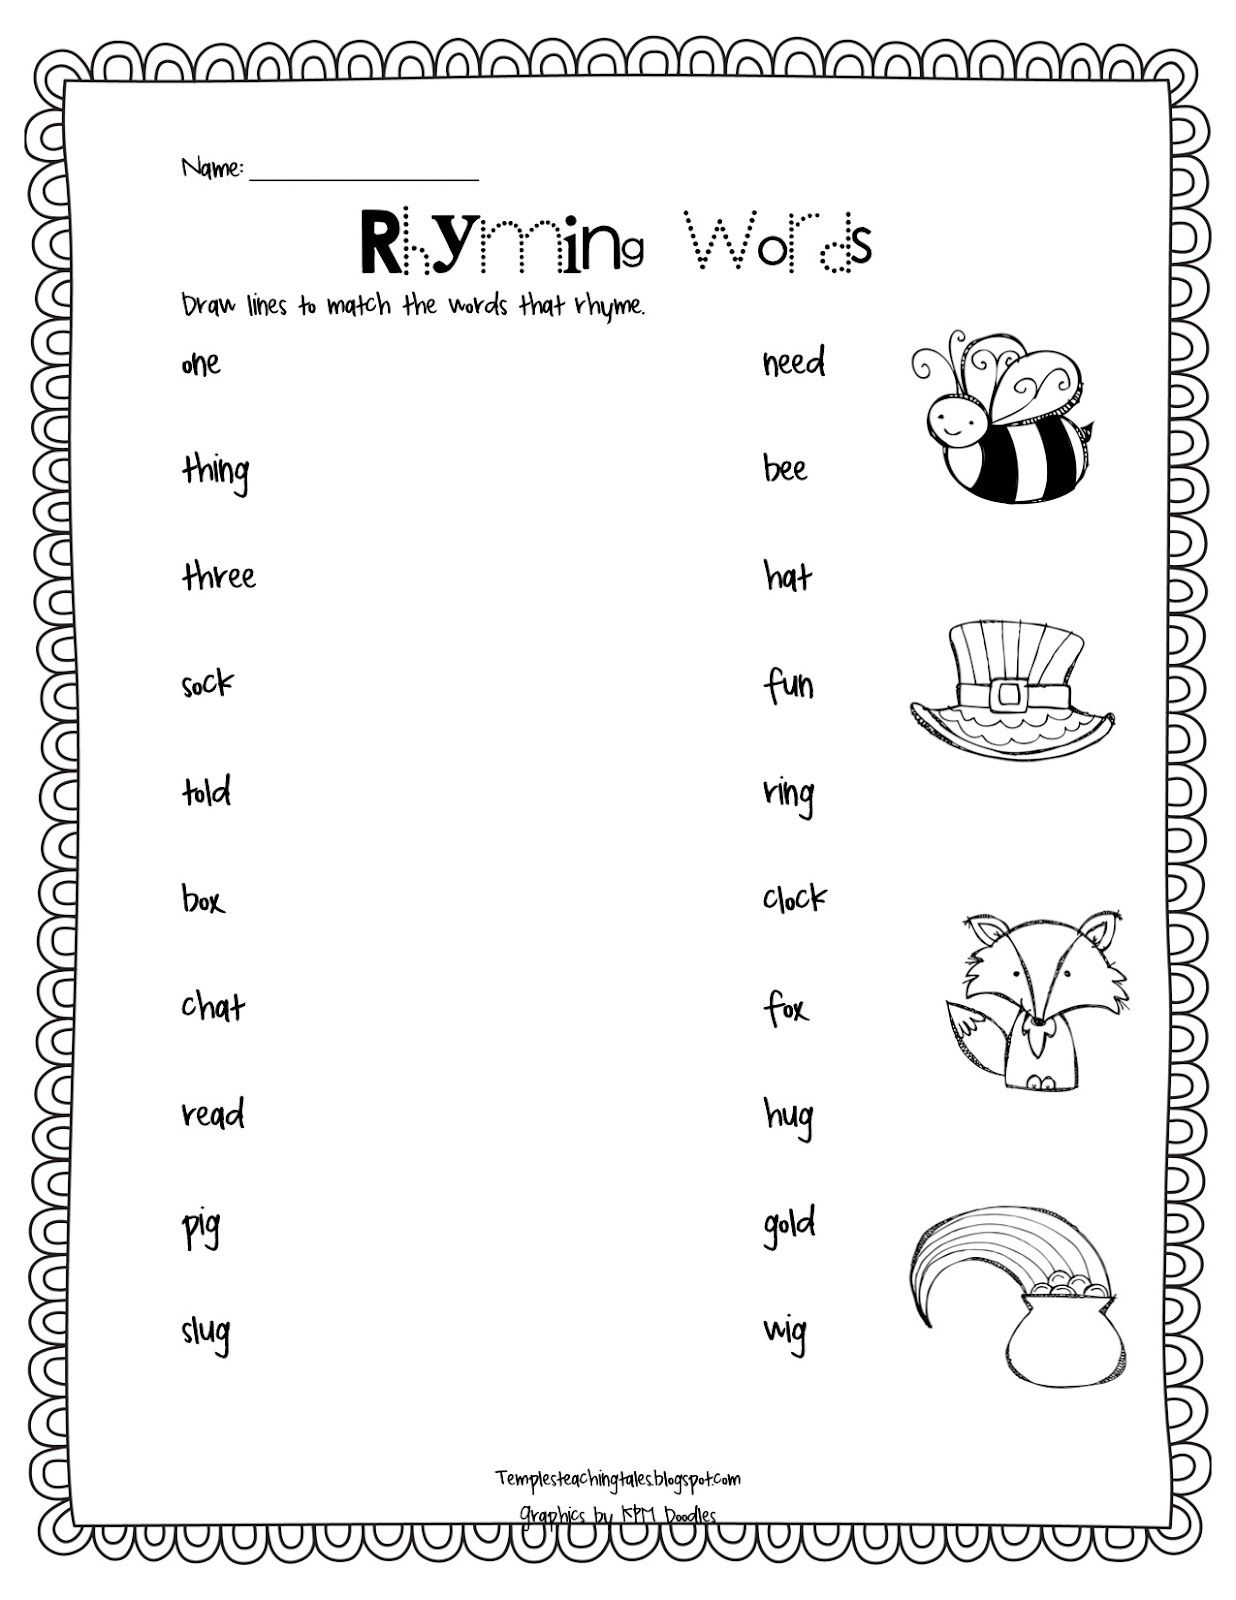 Worksheets Rhyming Words For Grade 1 Worksheets 17 best images about rhyming on pinterest focus activities for children and long vowels